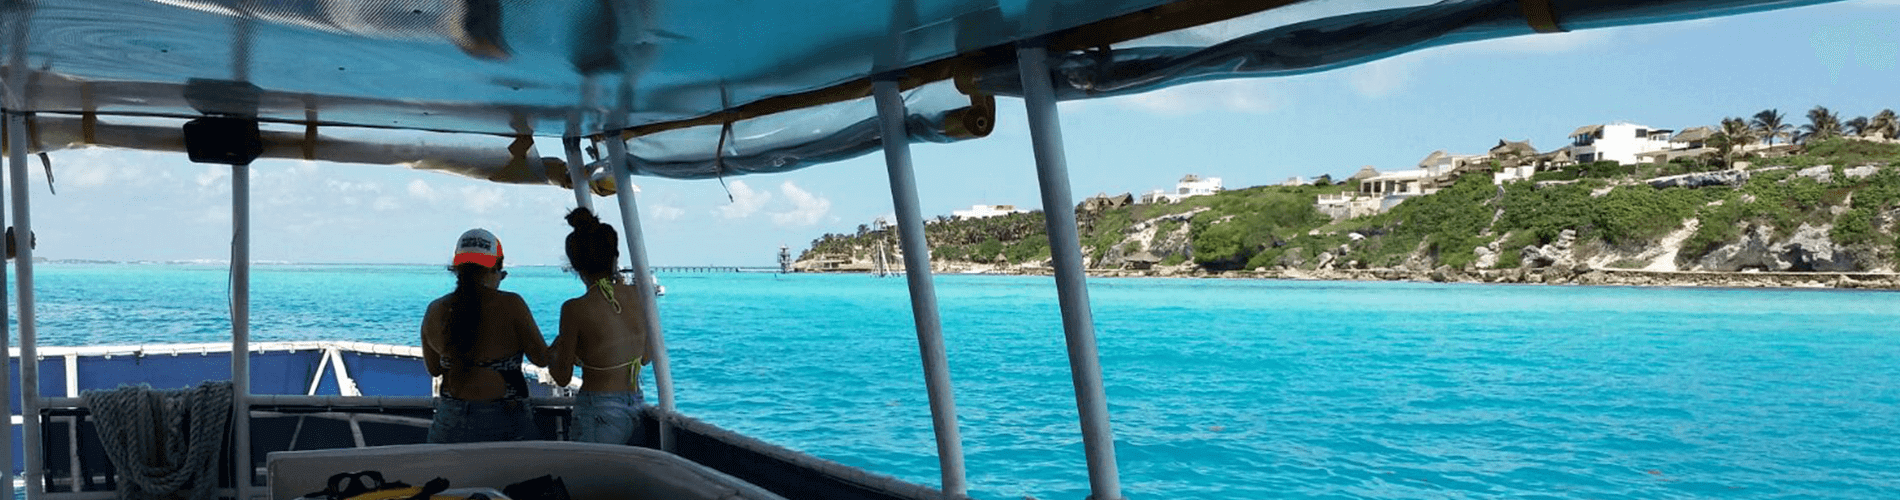 Tour Isla Mujeres All inclusive